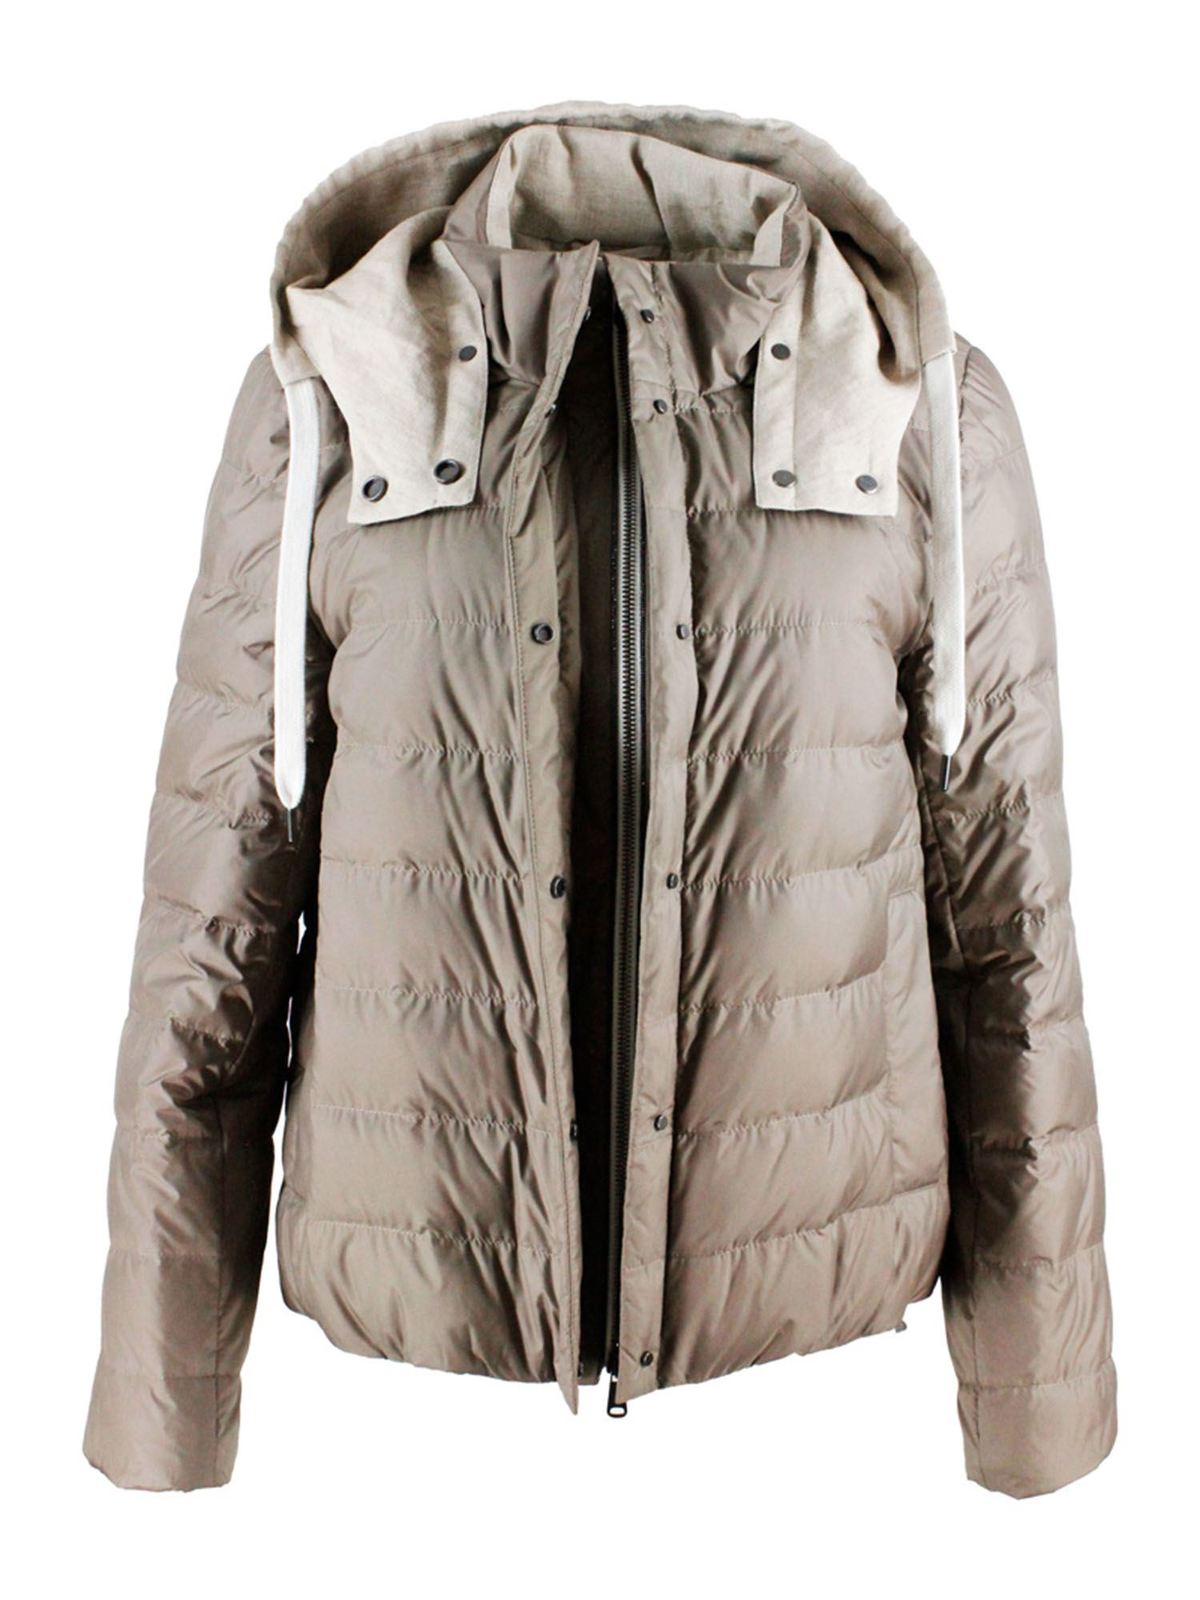 Brunello Cucinelli DOWN JACKET WITH REMOVABLE HOOD IN BROWN